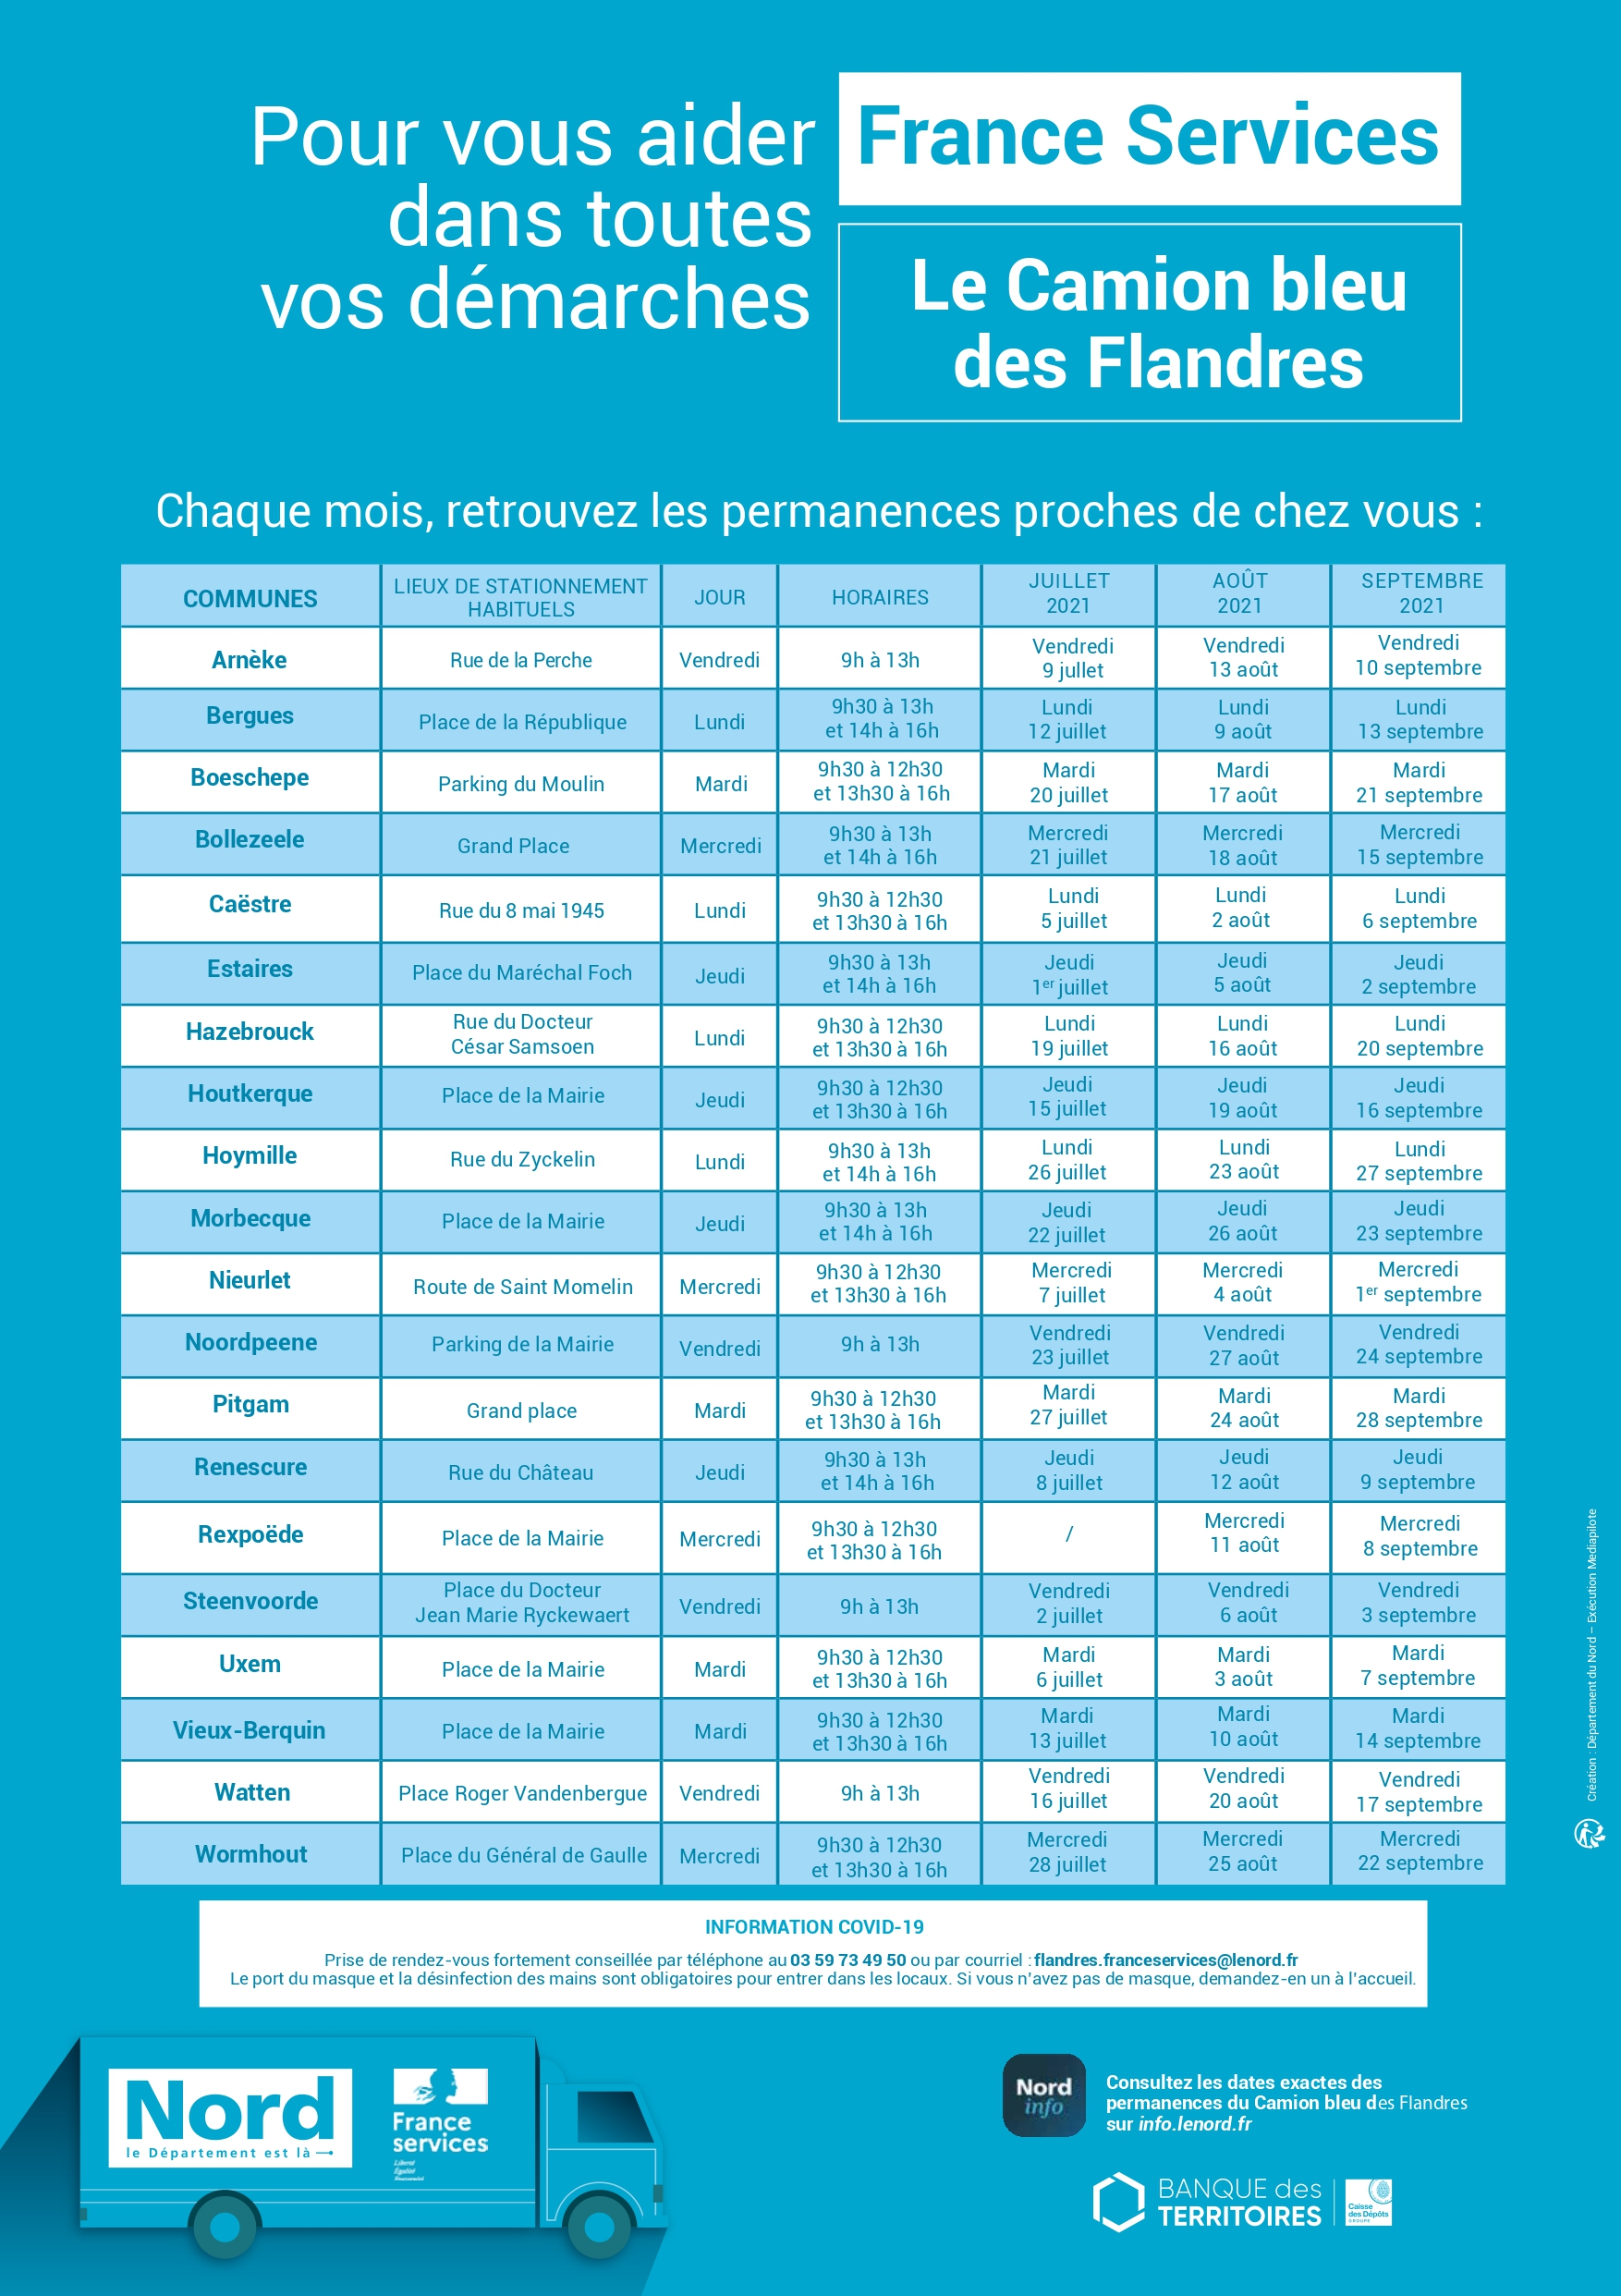 calendrier juillet aout sept camion_page-0001.jpg